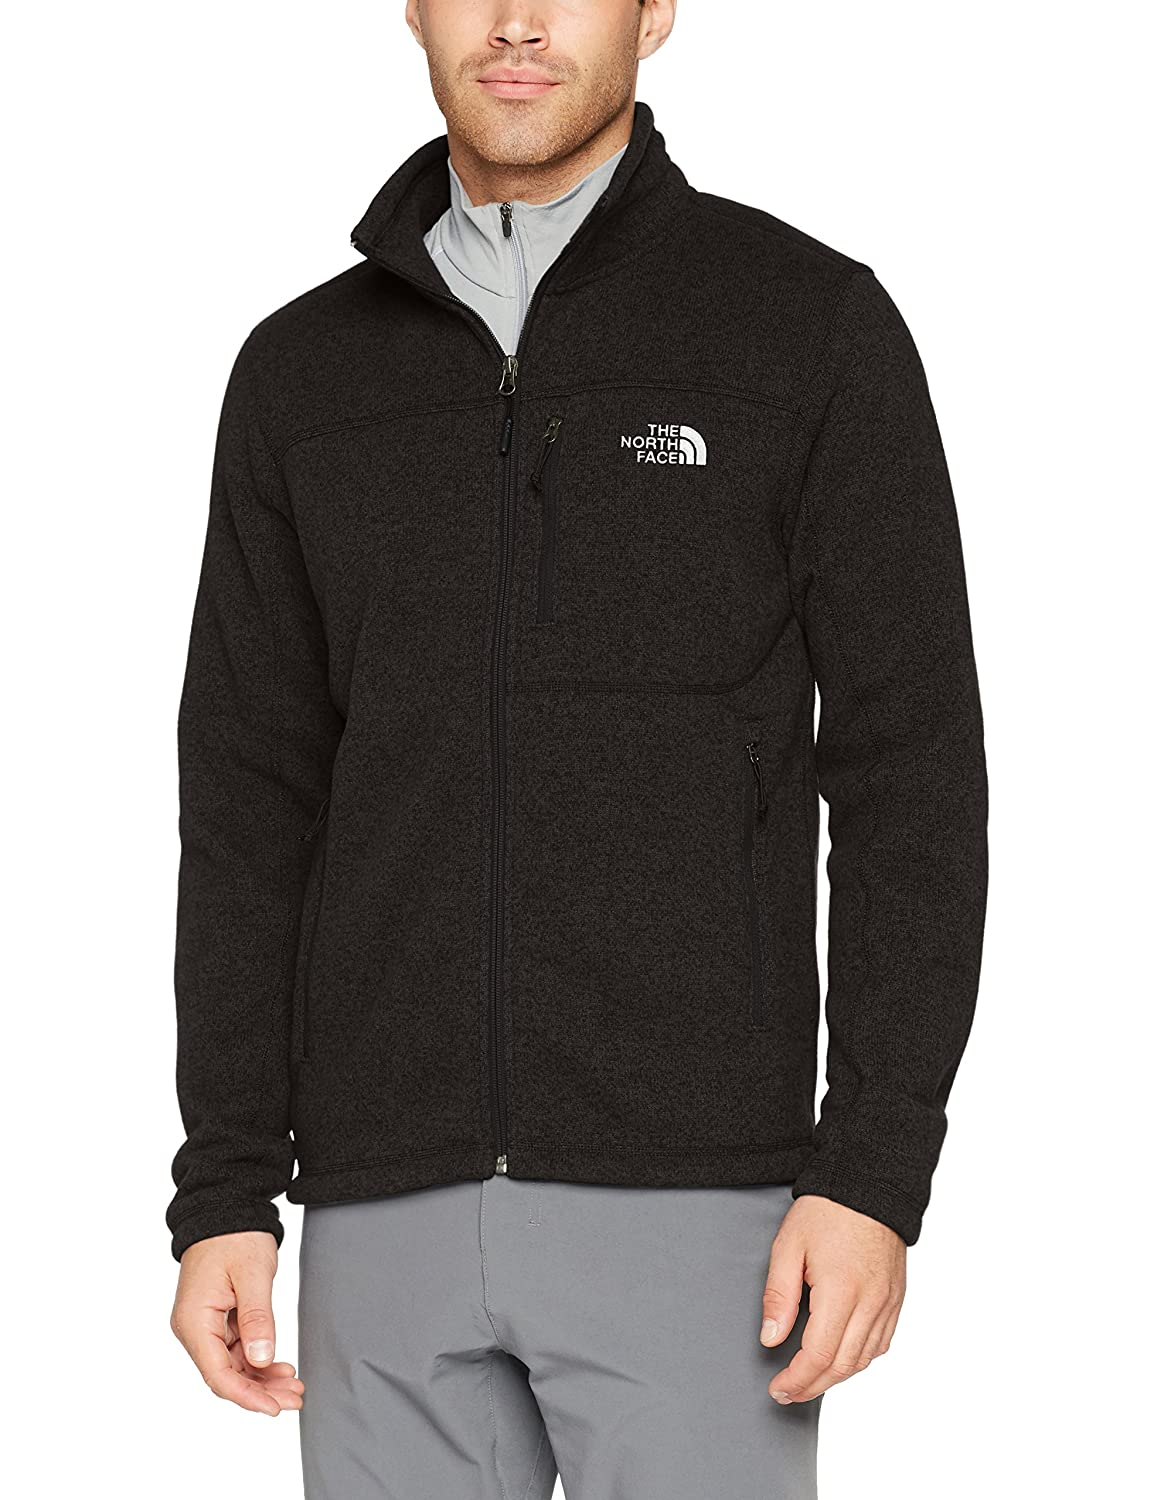 The North Face Gordon Lyons Full Zip Mens TNF Black Heather X-Large The North Face Inc T933R5KS7. XL